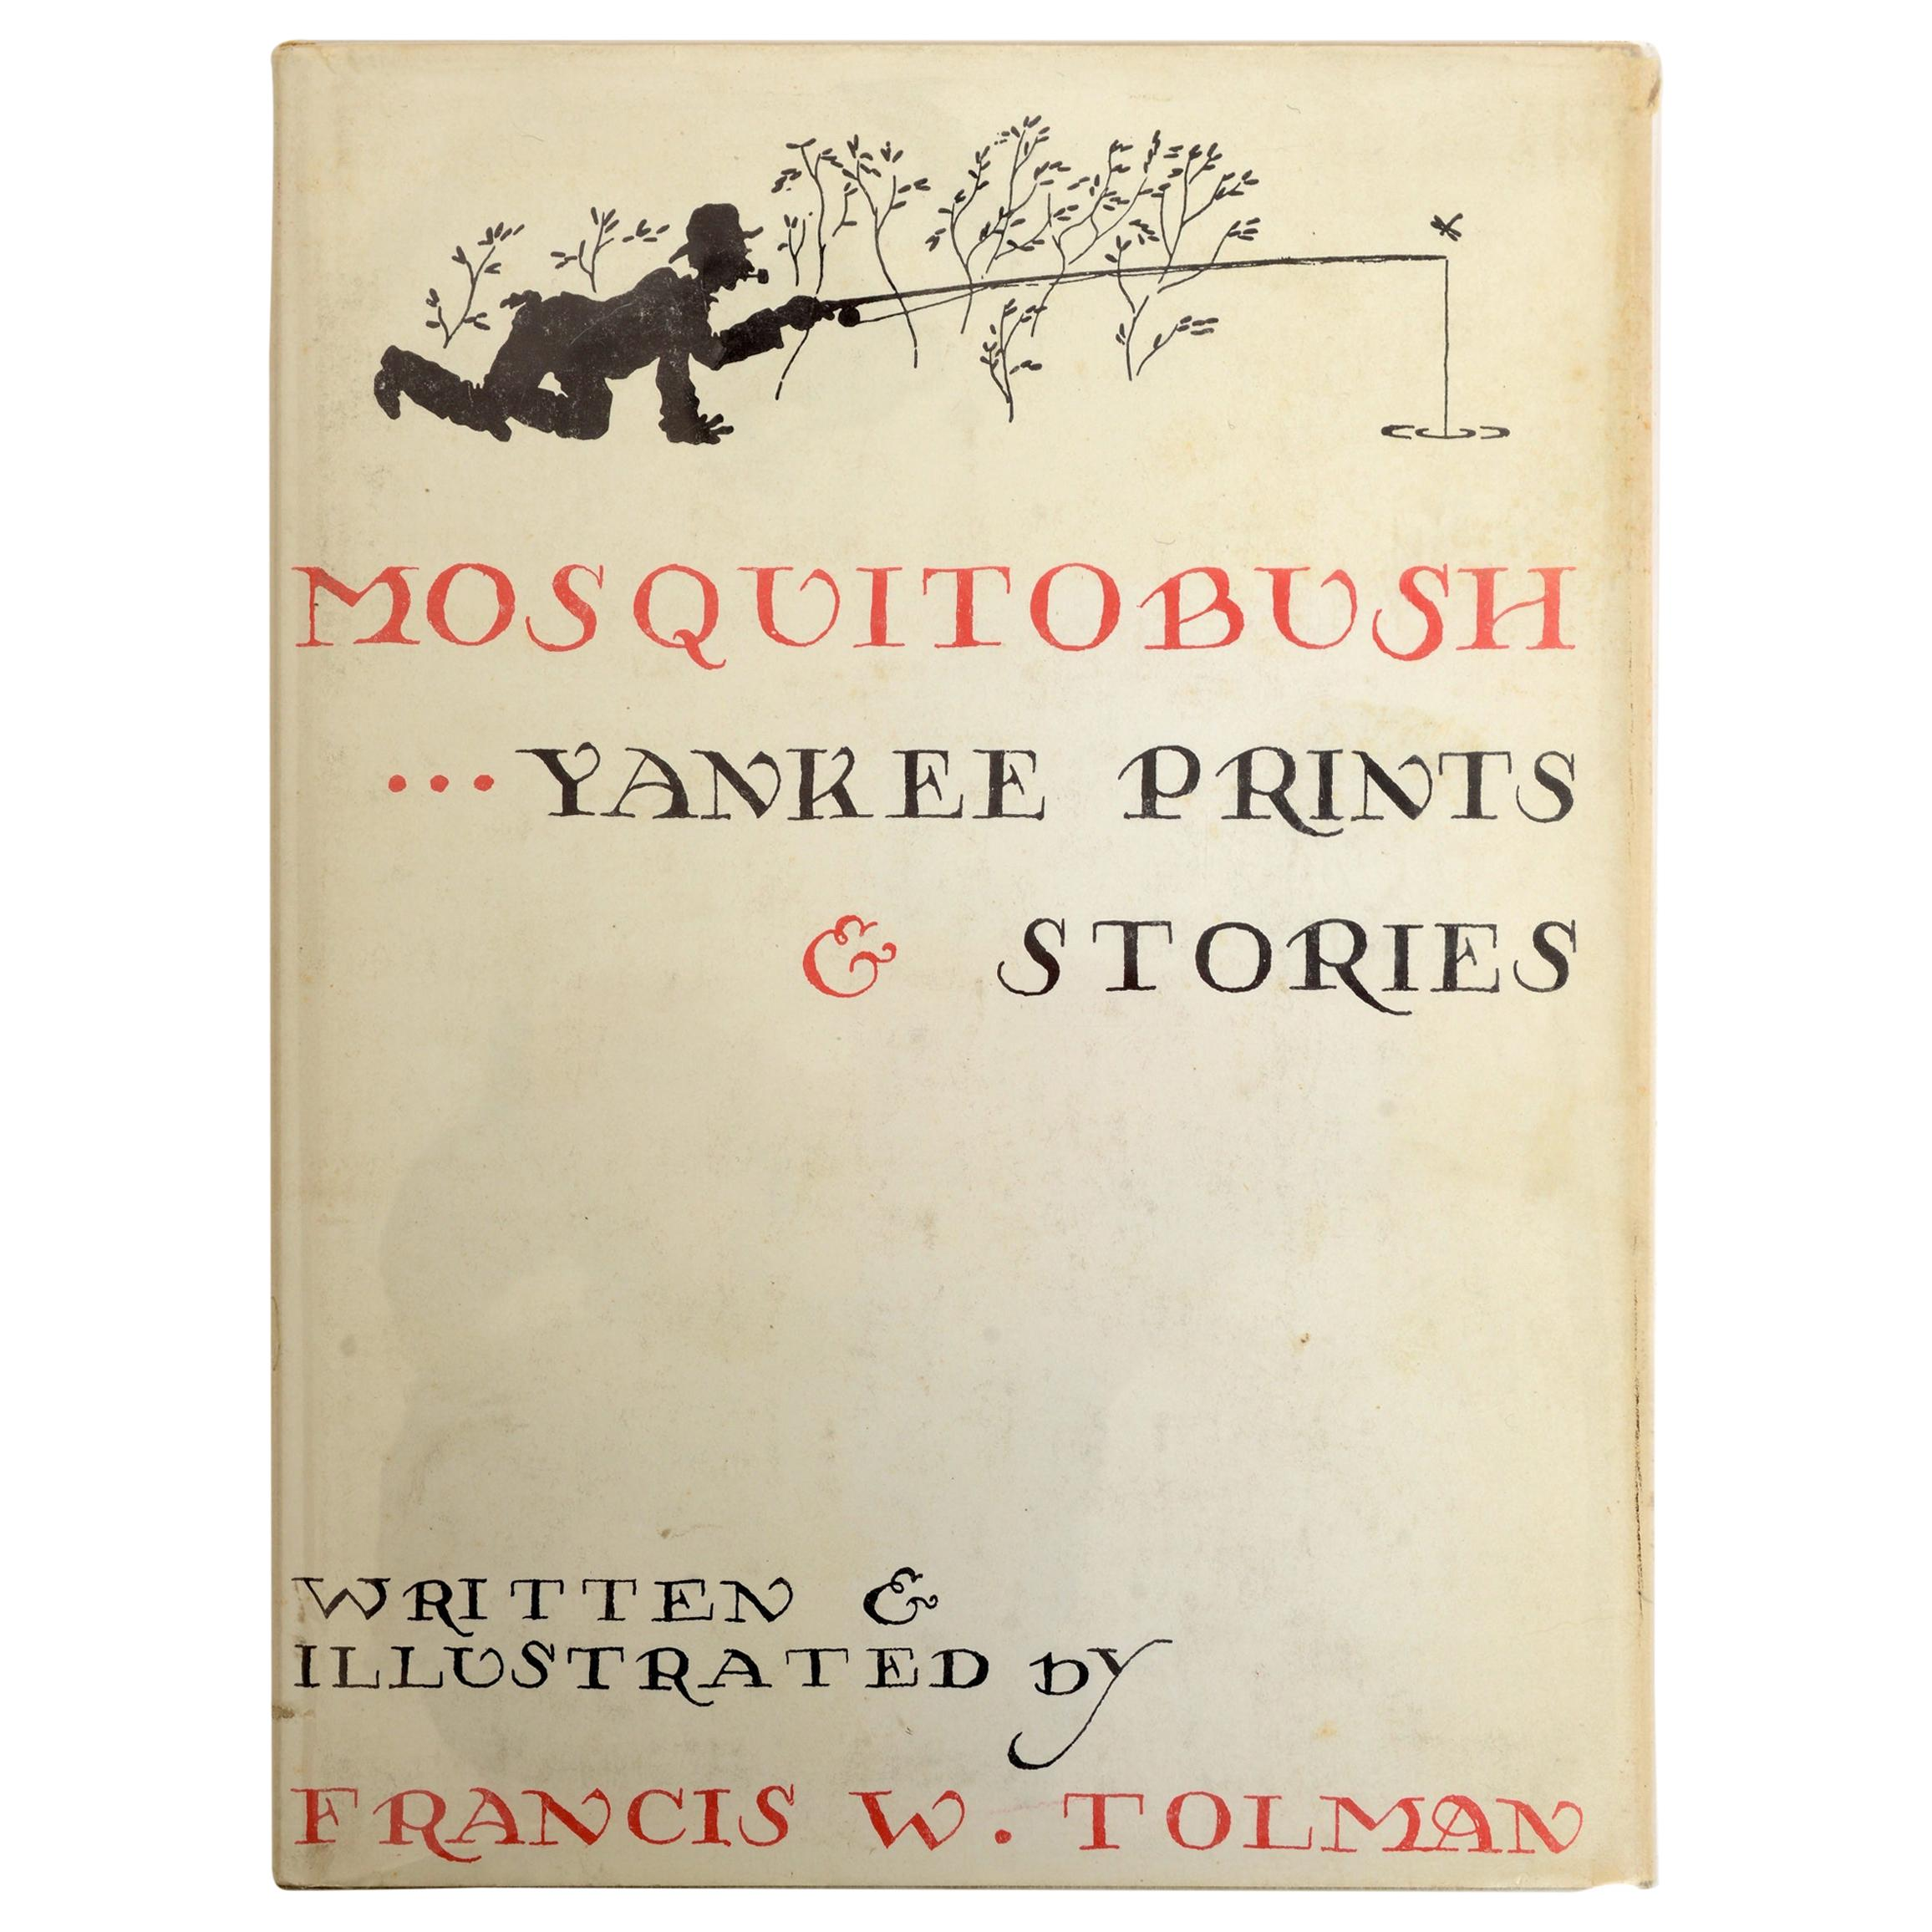 Mosquitobush Yankee Prints & Stories by Francis Tolman, Signed First Edition